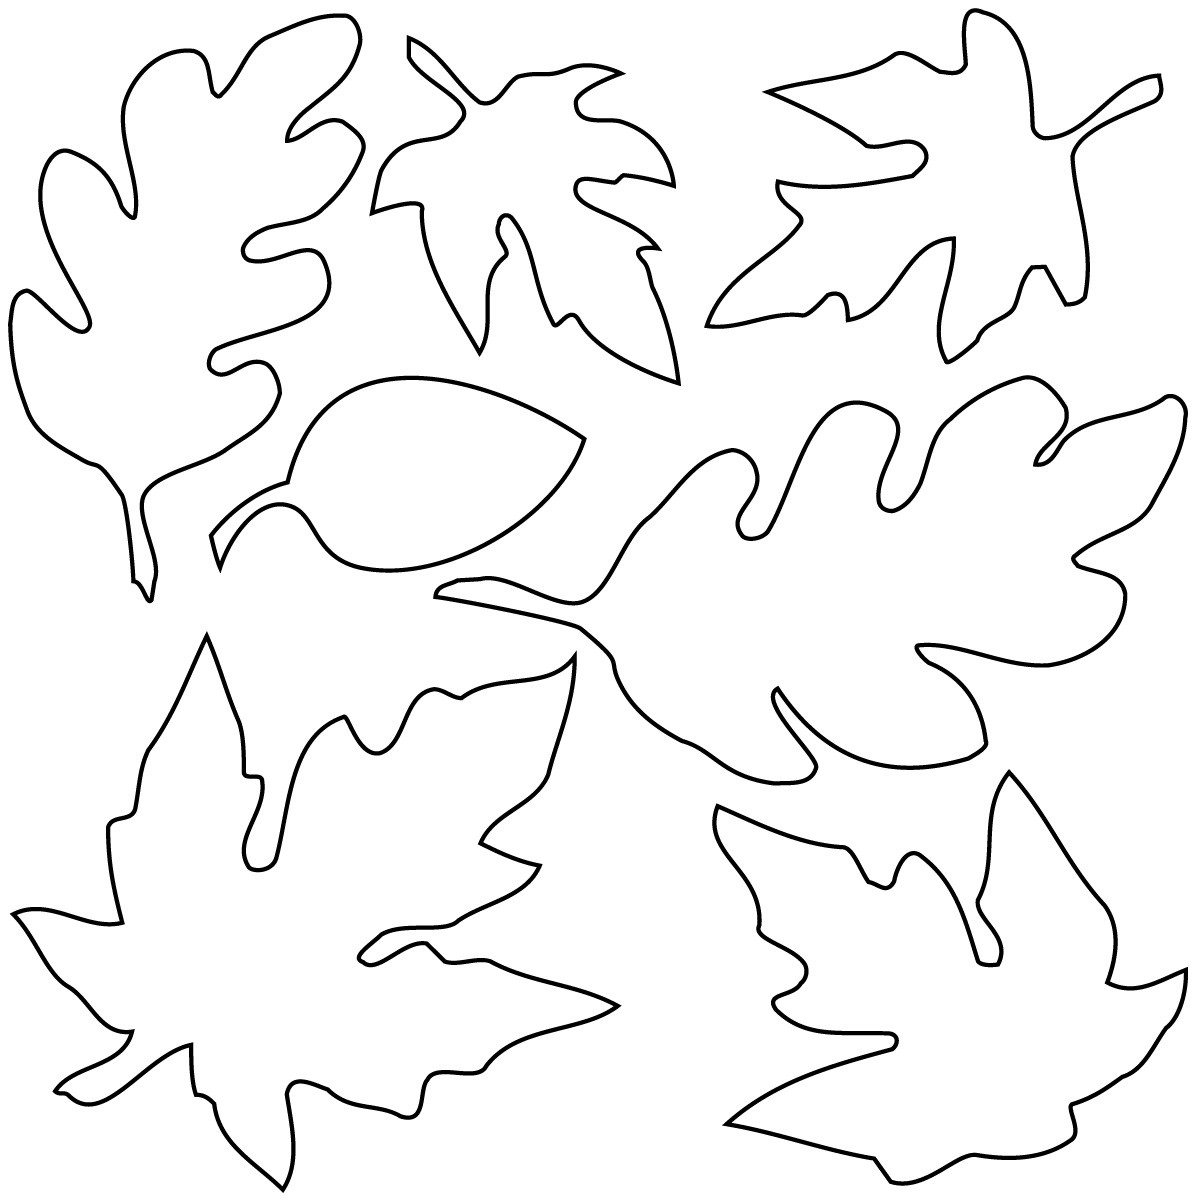 Oak Leaf Clip Art Black And White Oak Leaf Black And White